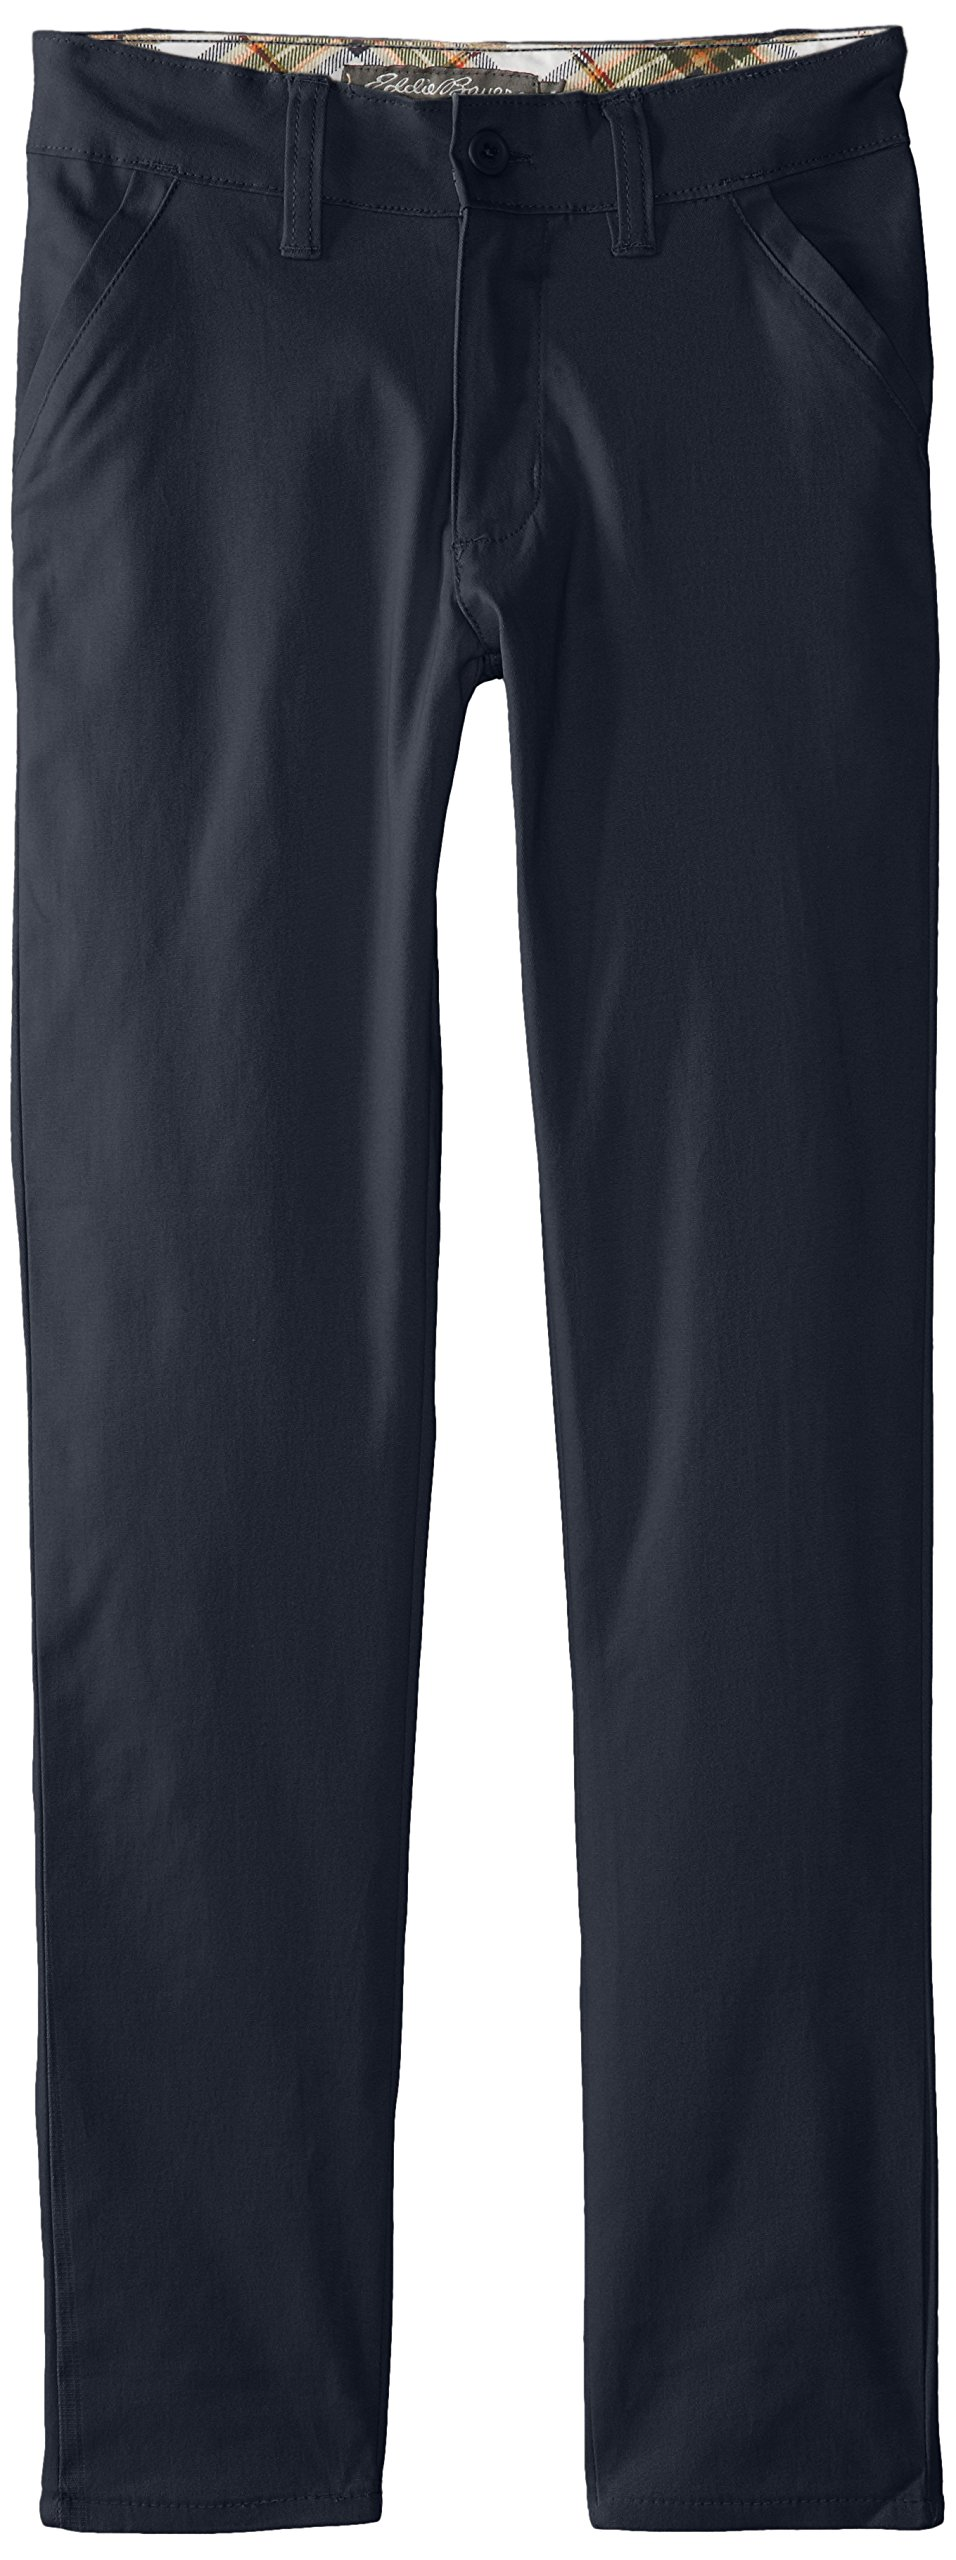 Eddie Bauer Girls' Twill Pant (More Styles Available), Soft Navy, 12